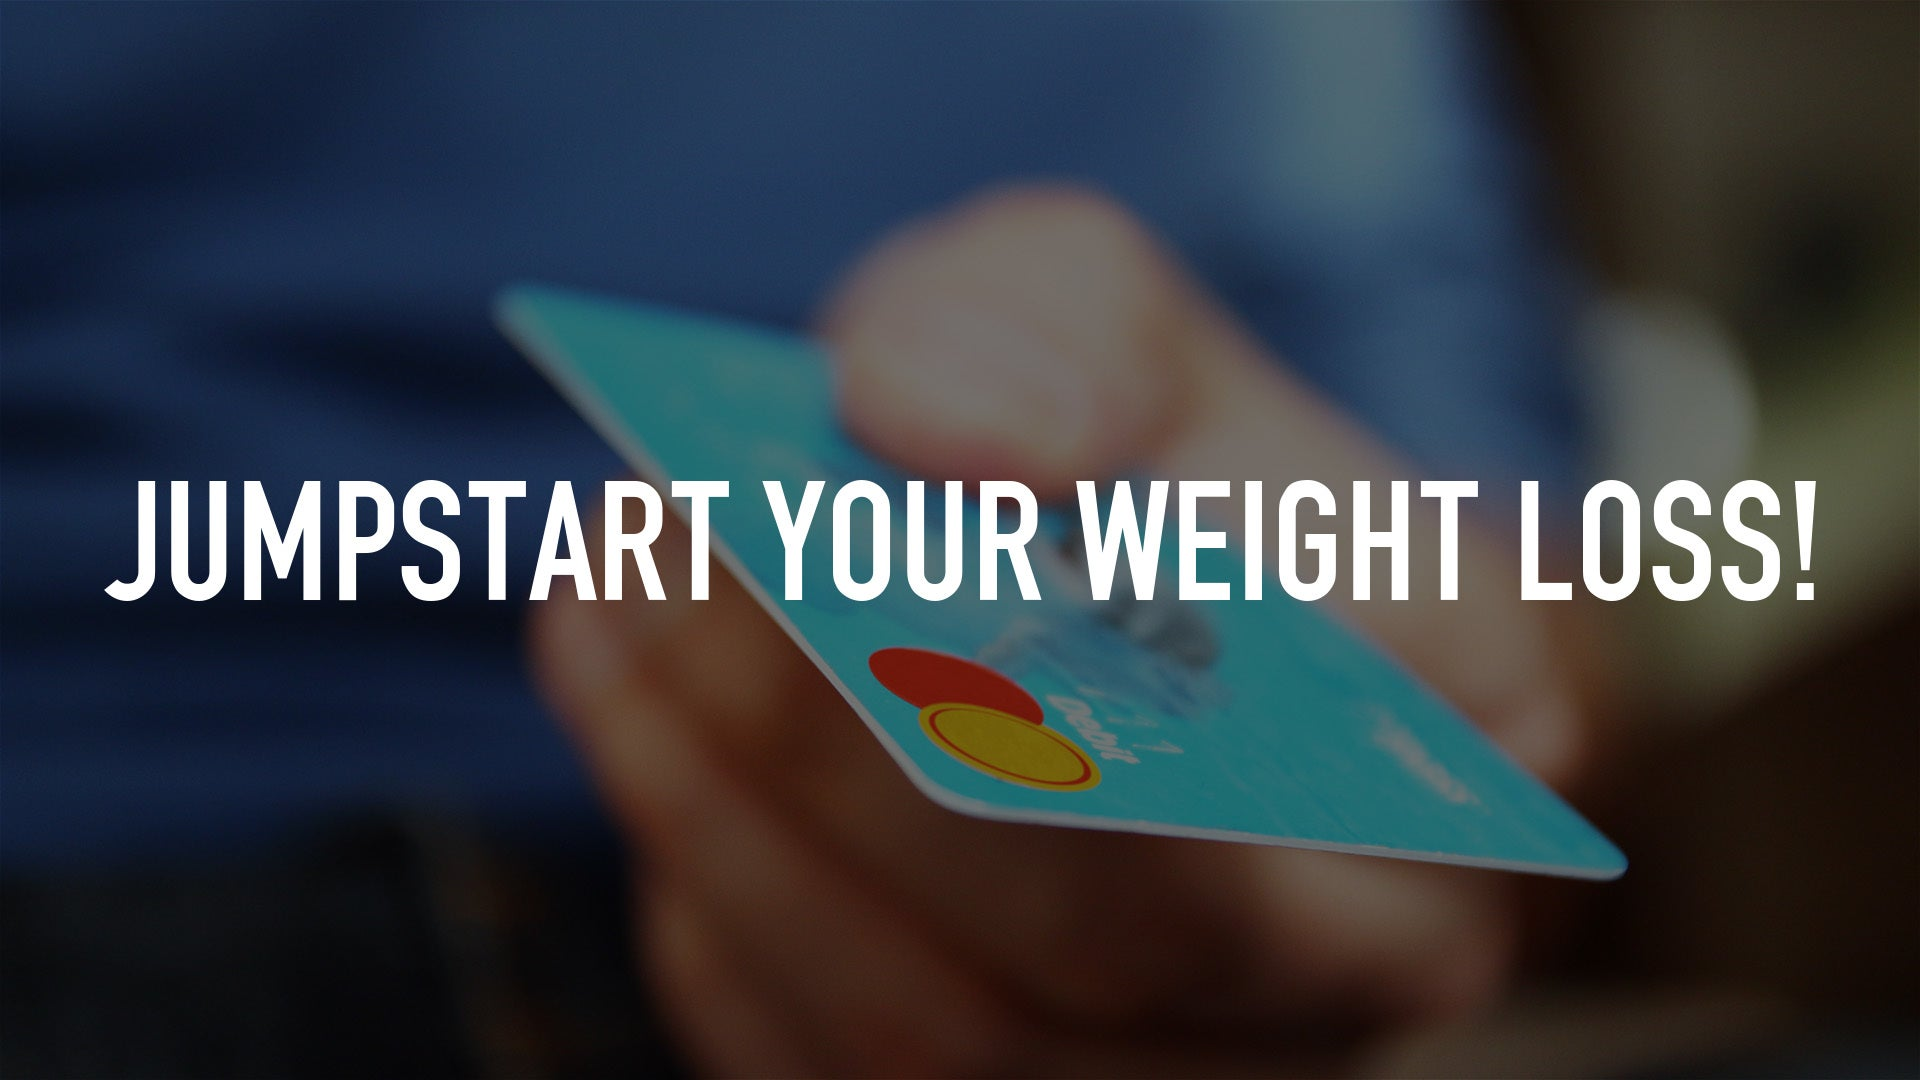 Jumpstart Your Weight Loss!